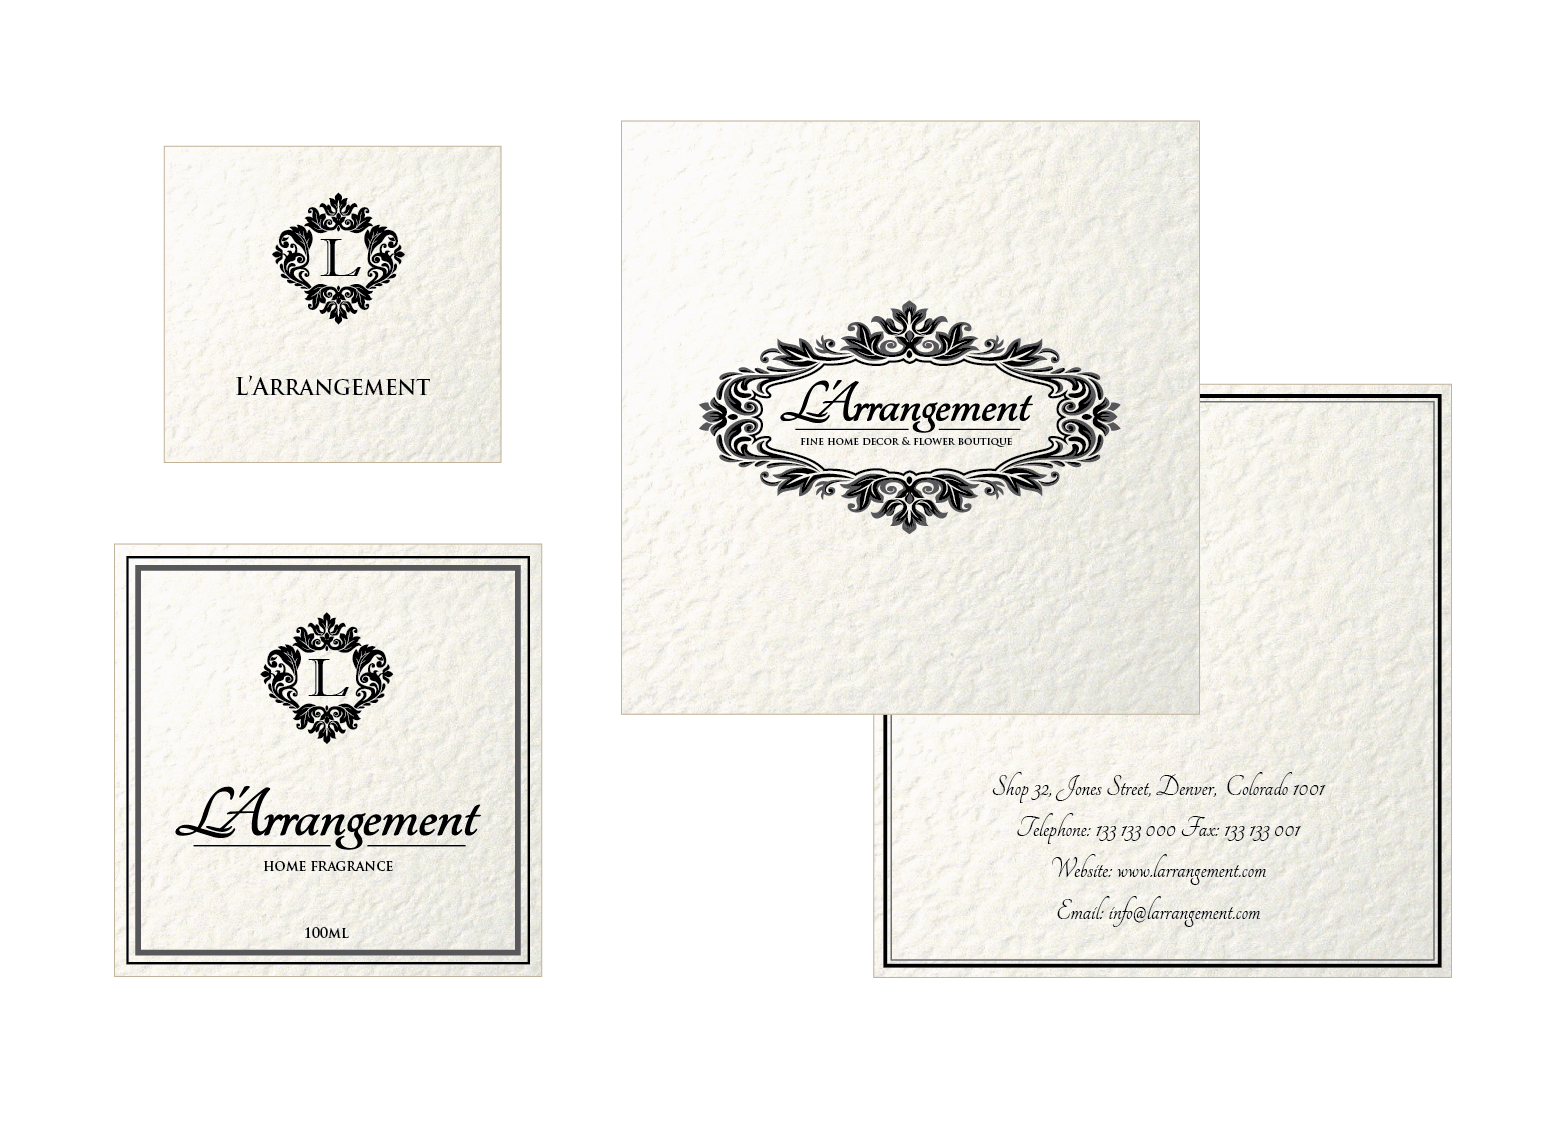 New logo wanted for L'Arrangement